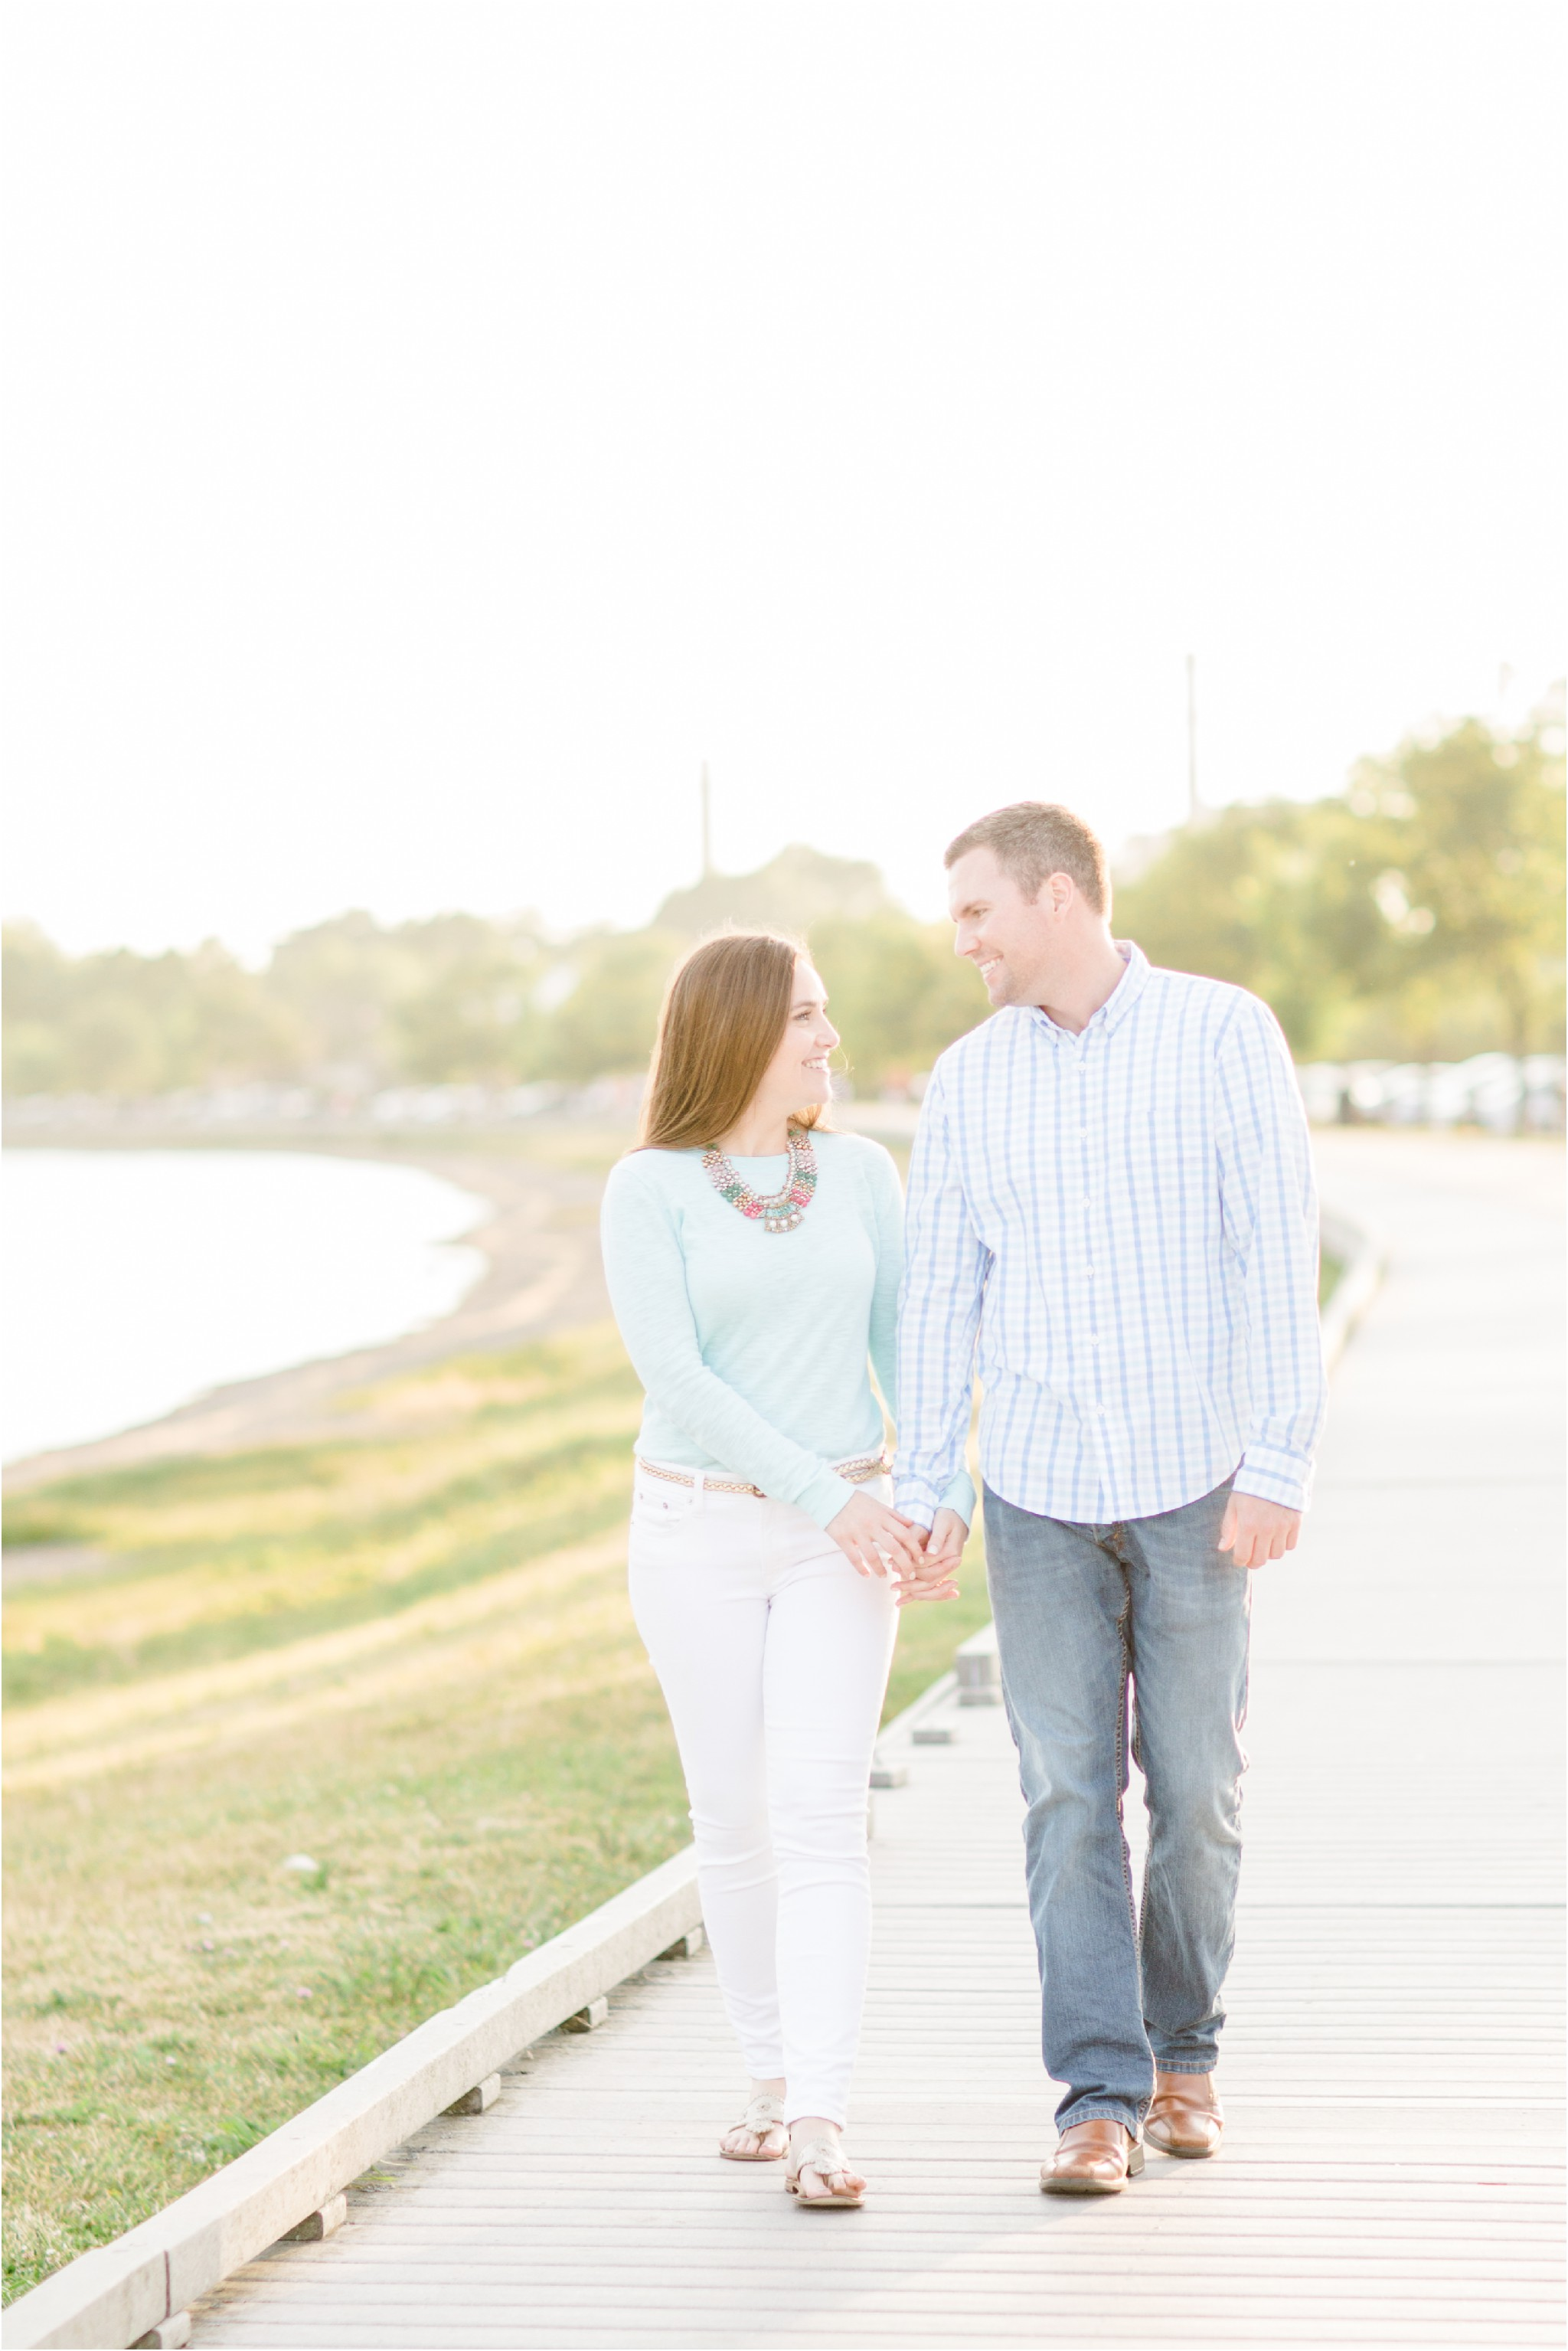 boston_engagement_session_Deborah_Zoe_0001.JPG